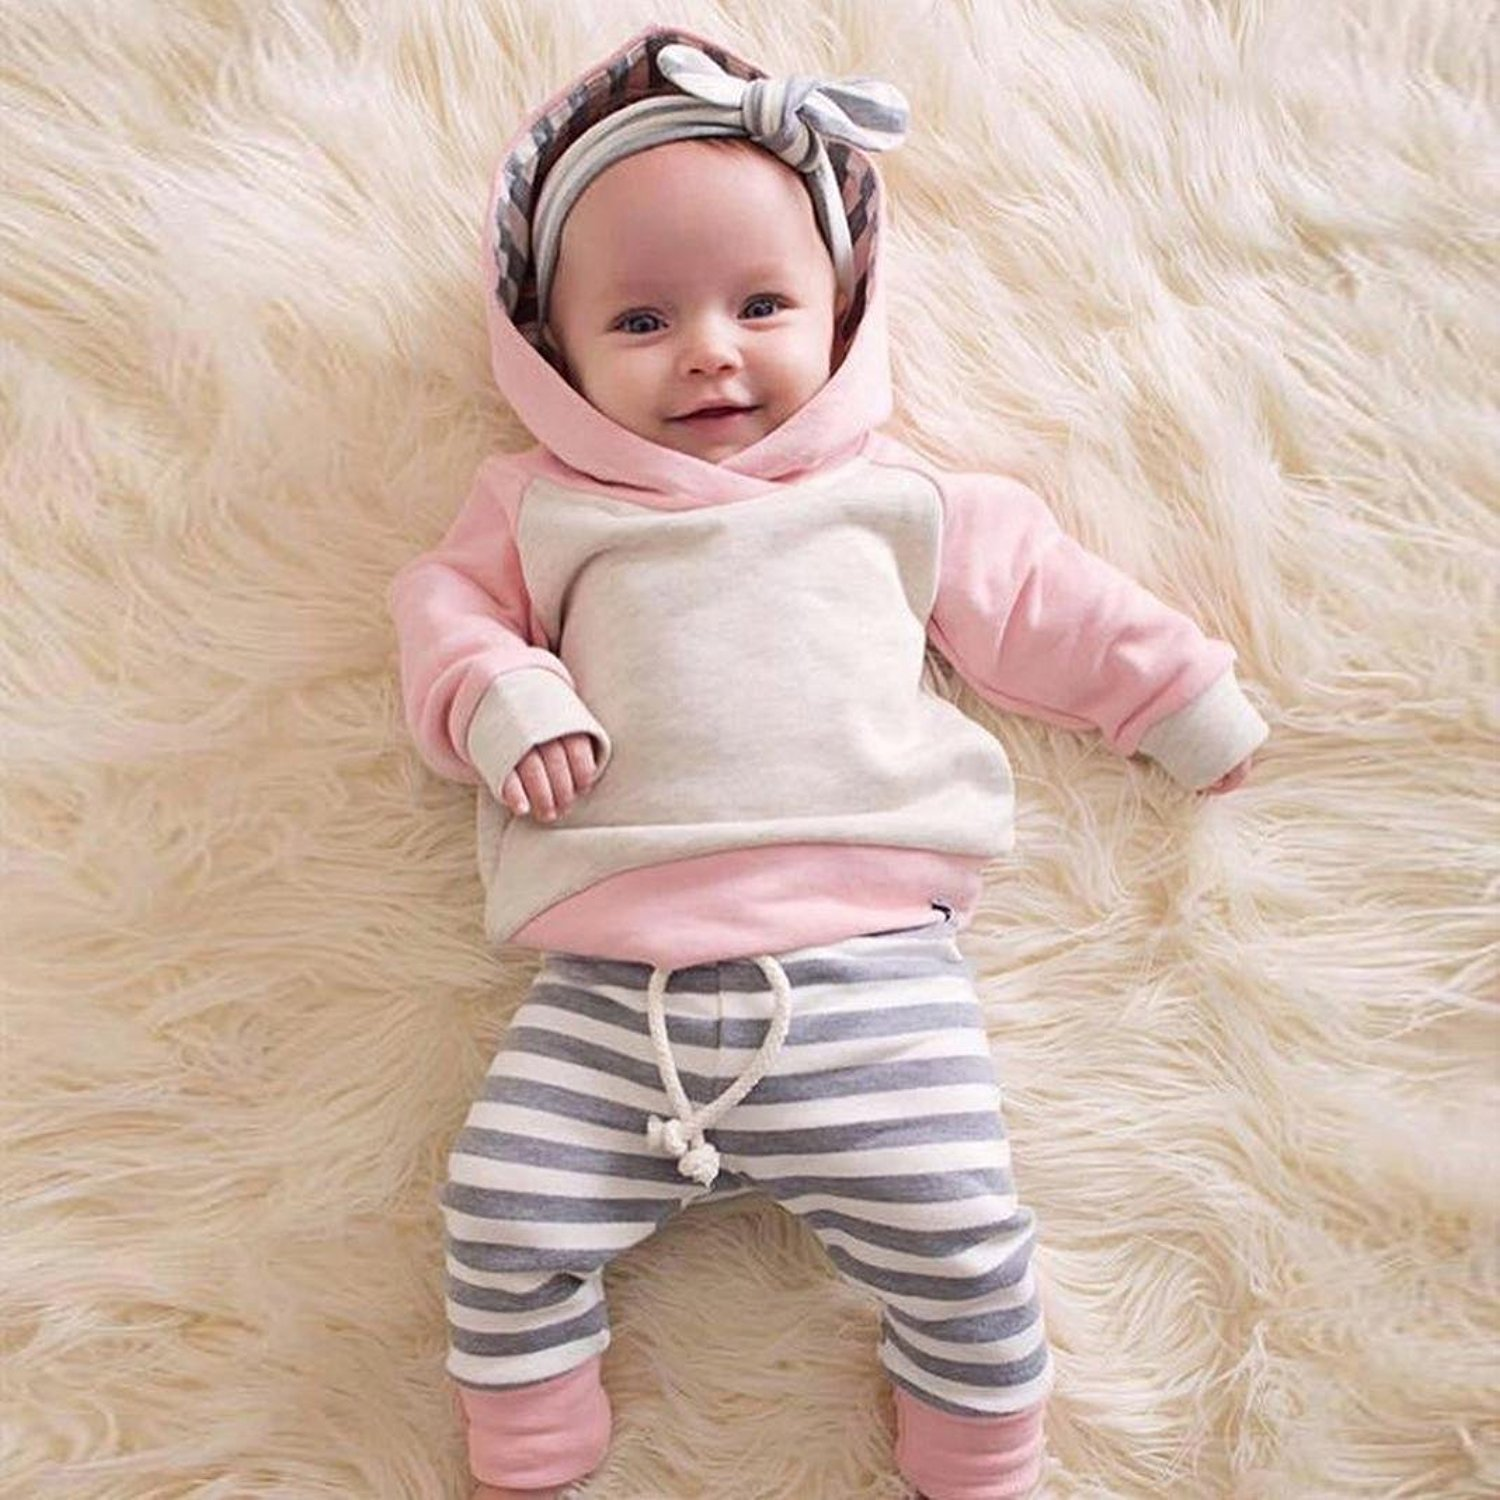 Baby Girls' Clothes Long Sleeve Hoodie Tops, Striped Pants+Headband Outfits Set (18-24 Months) by TUEMOS (Image #2)